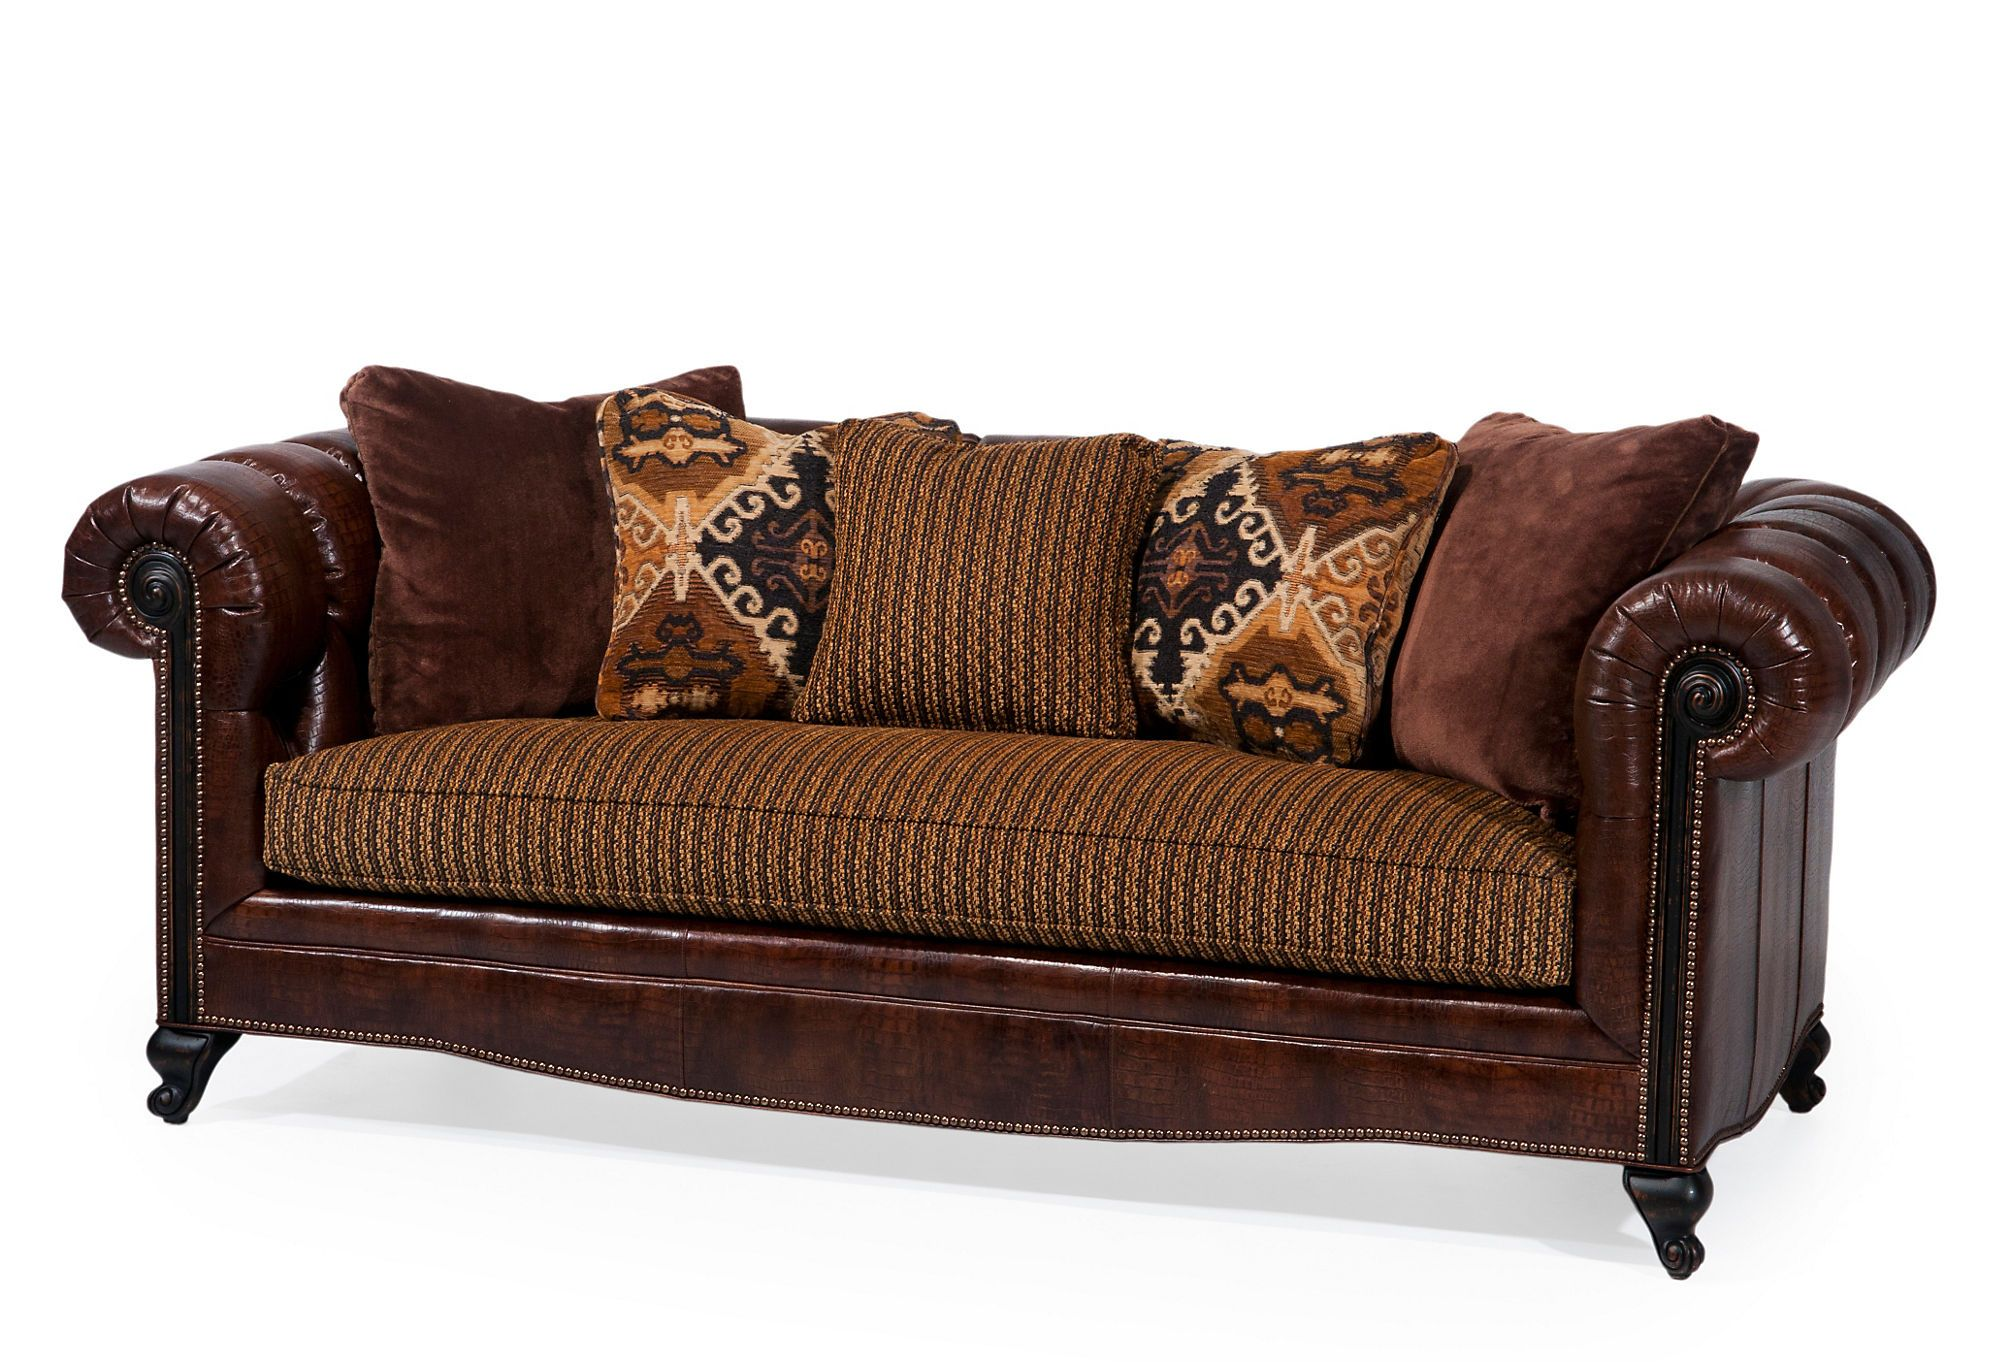 Munsey Sofa Dummy Wesley Hall Product Catalog One Kings Lane Leather Couch Cushions On Sofa Home Decor Furniture